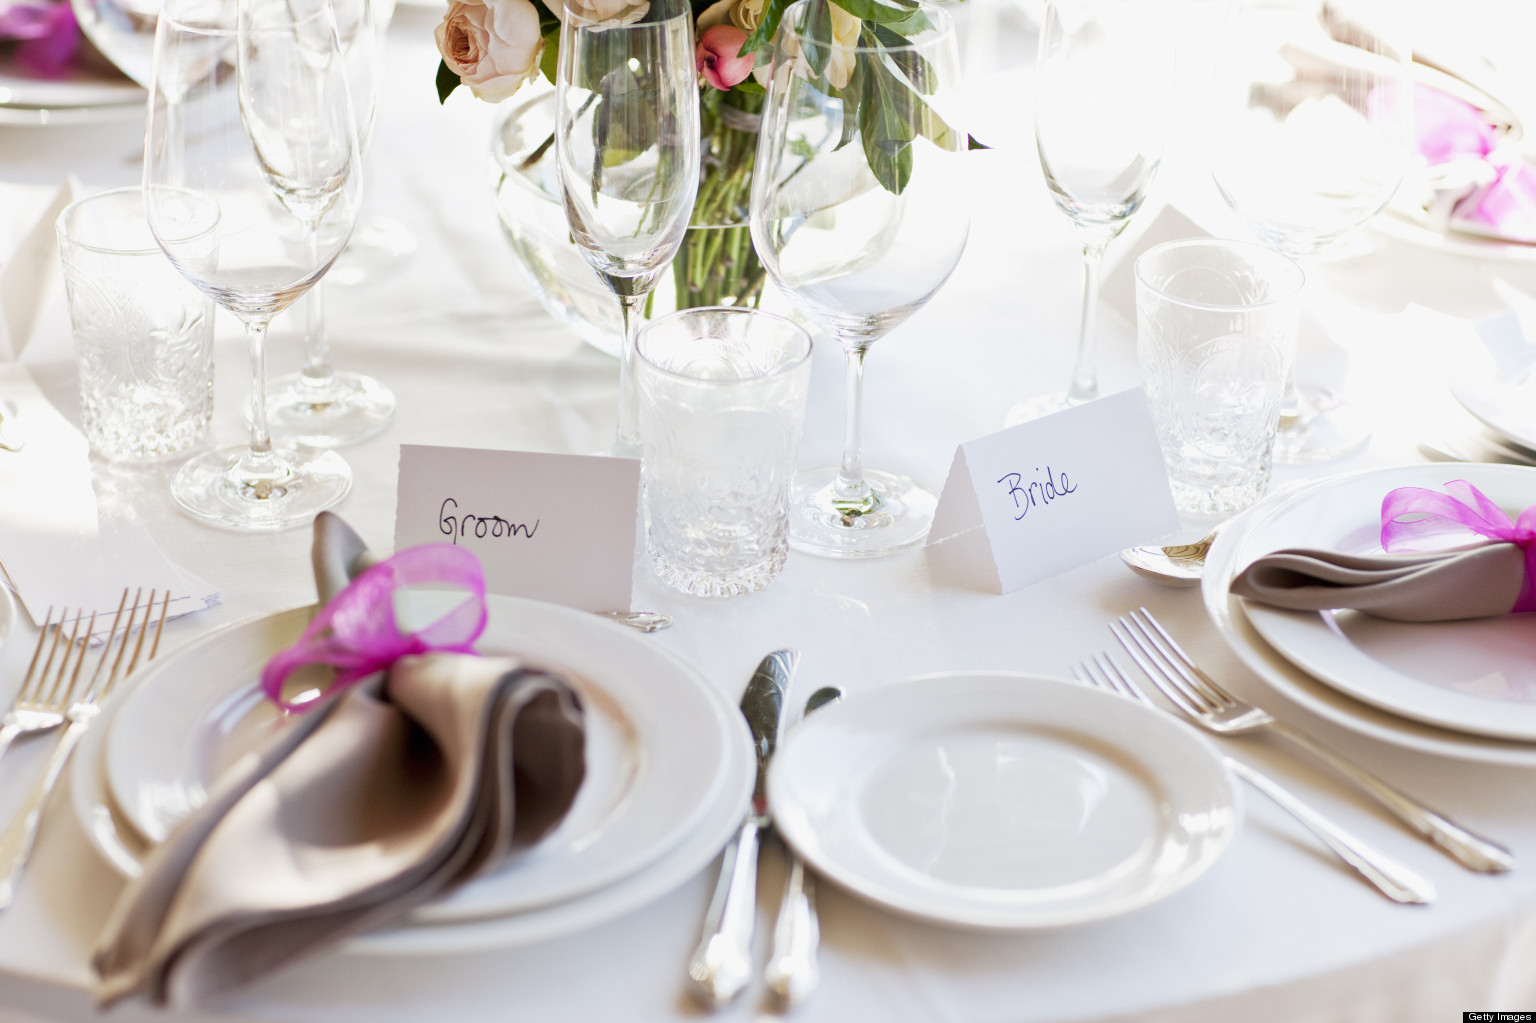 How Catering Works At A Destination Wedding: A Bridal